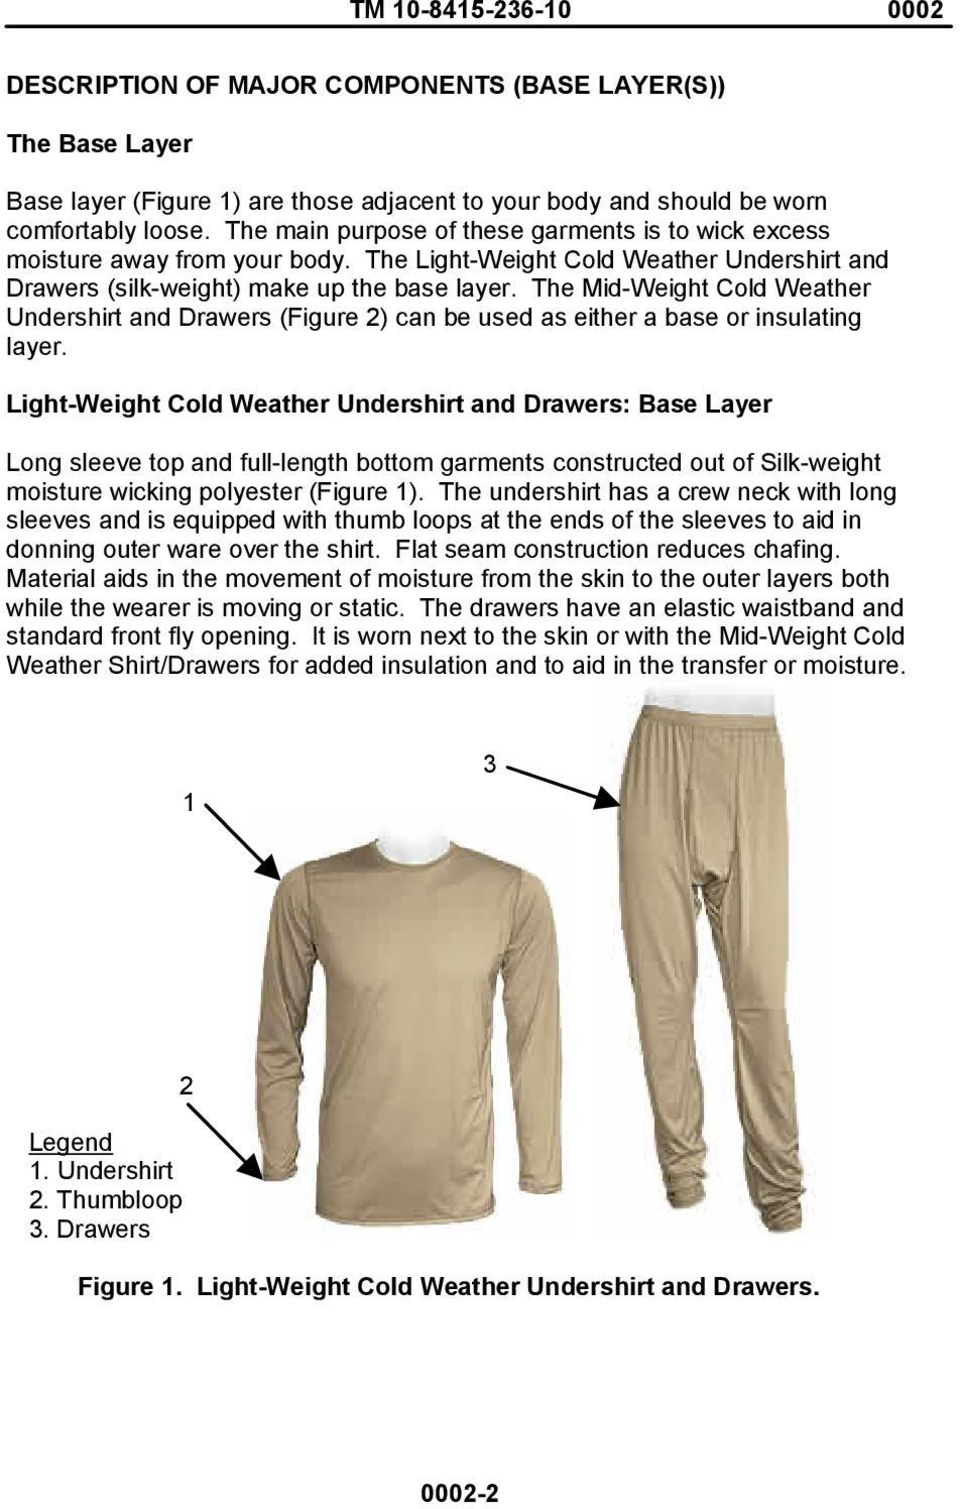 The Mid-Weight Cold Weather Undershirt and Drawers (Figure 2) can be used as either a base or insulating layer.